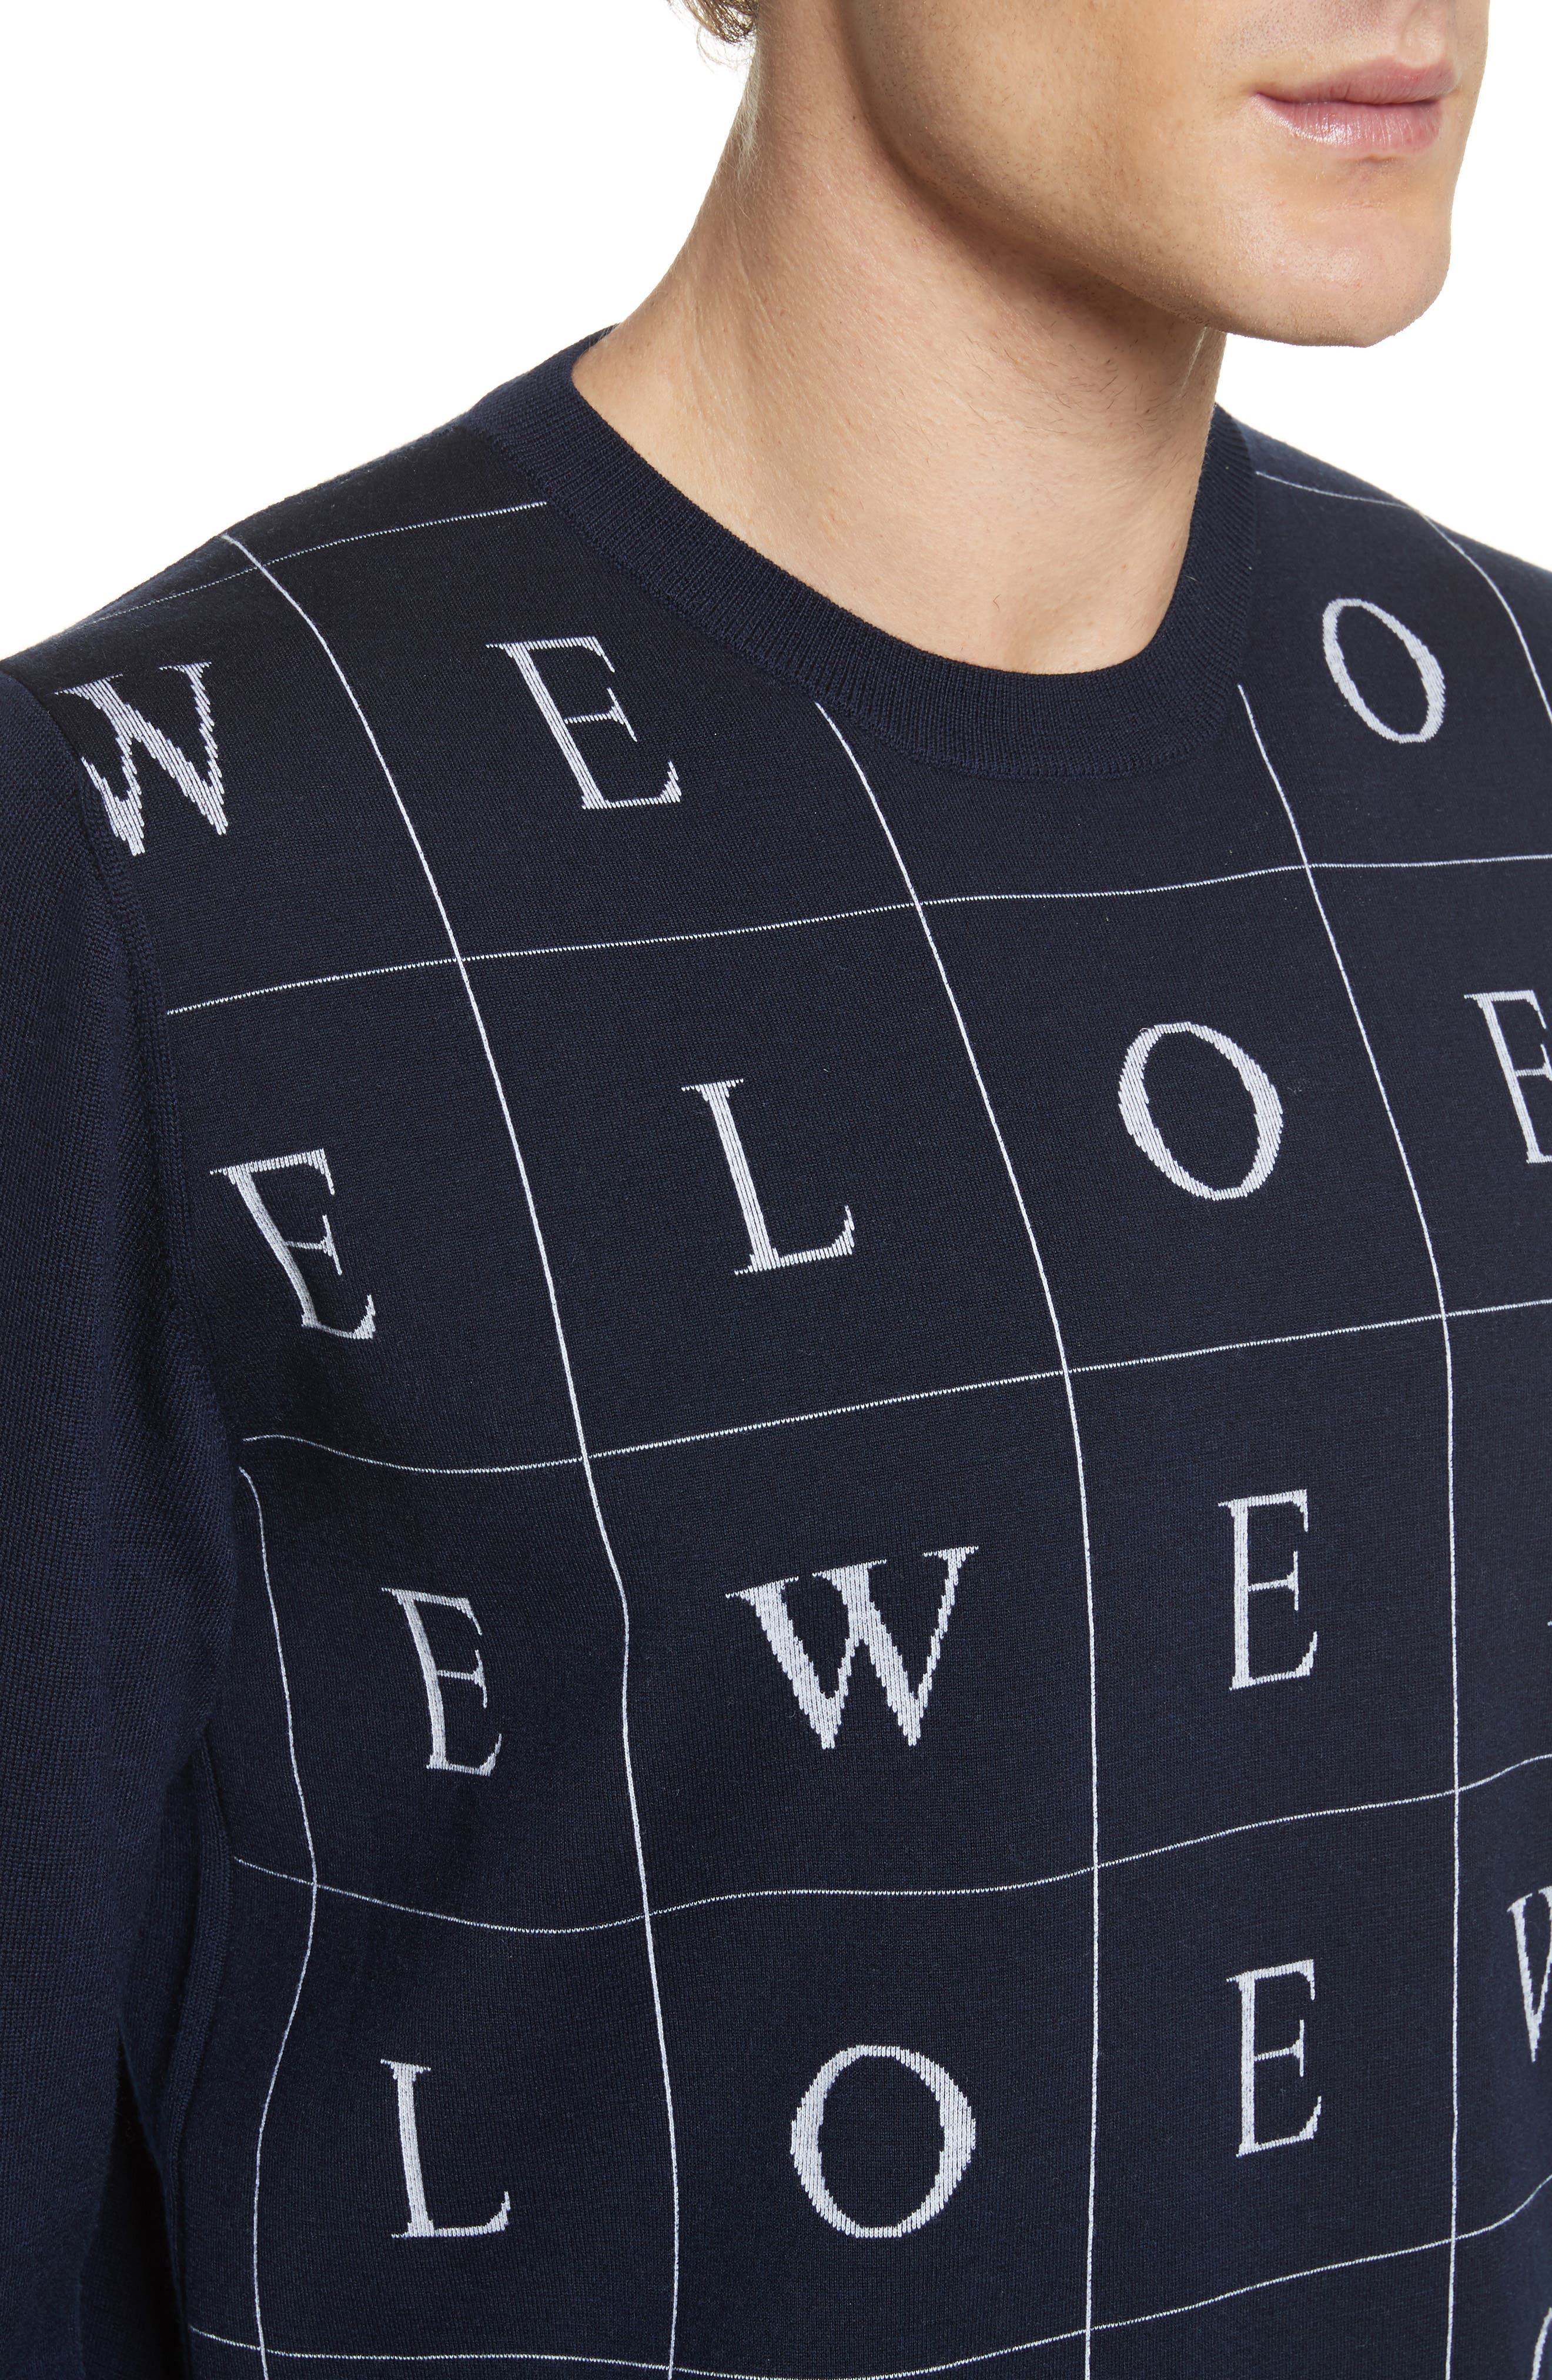 Letters Wool Sweater,                             Alternate thumbnail 3, color,                             Navy Blue